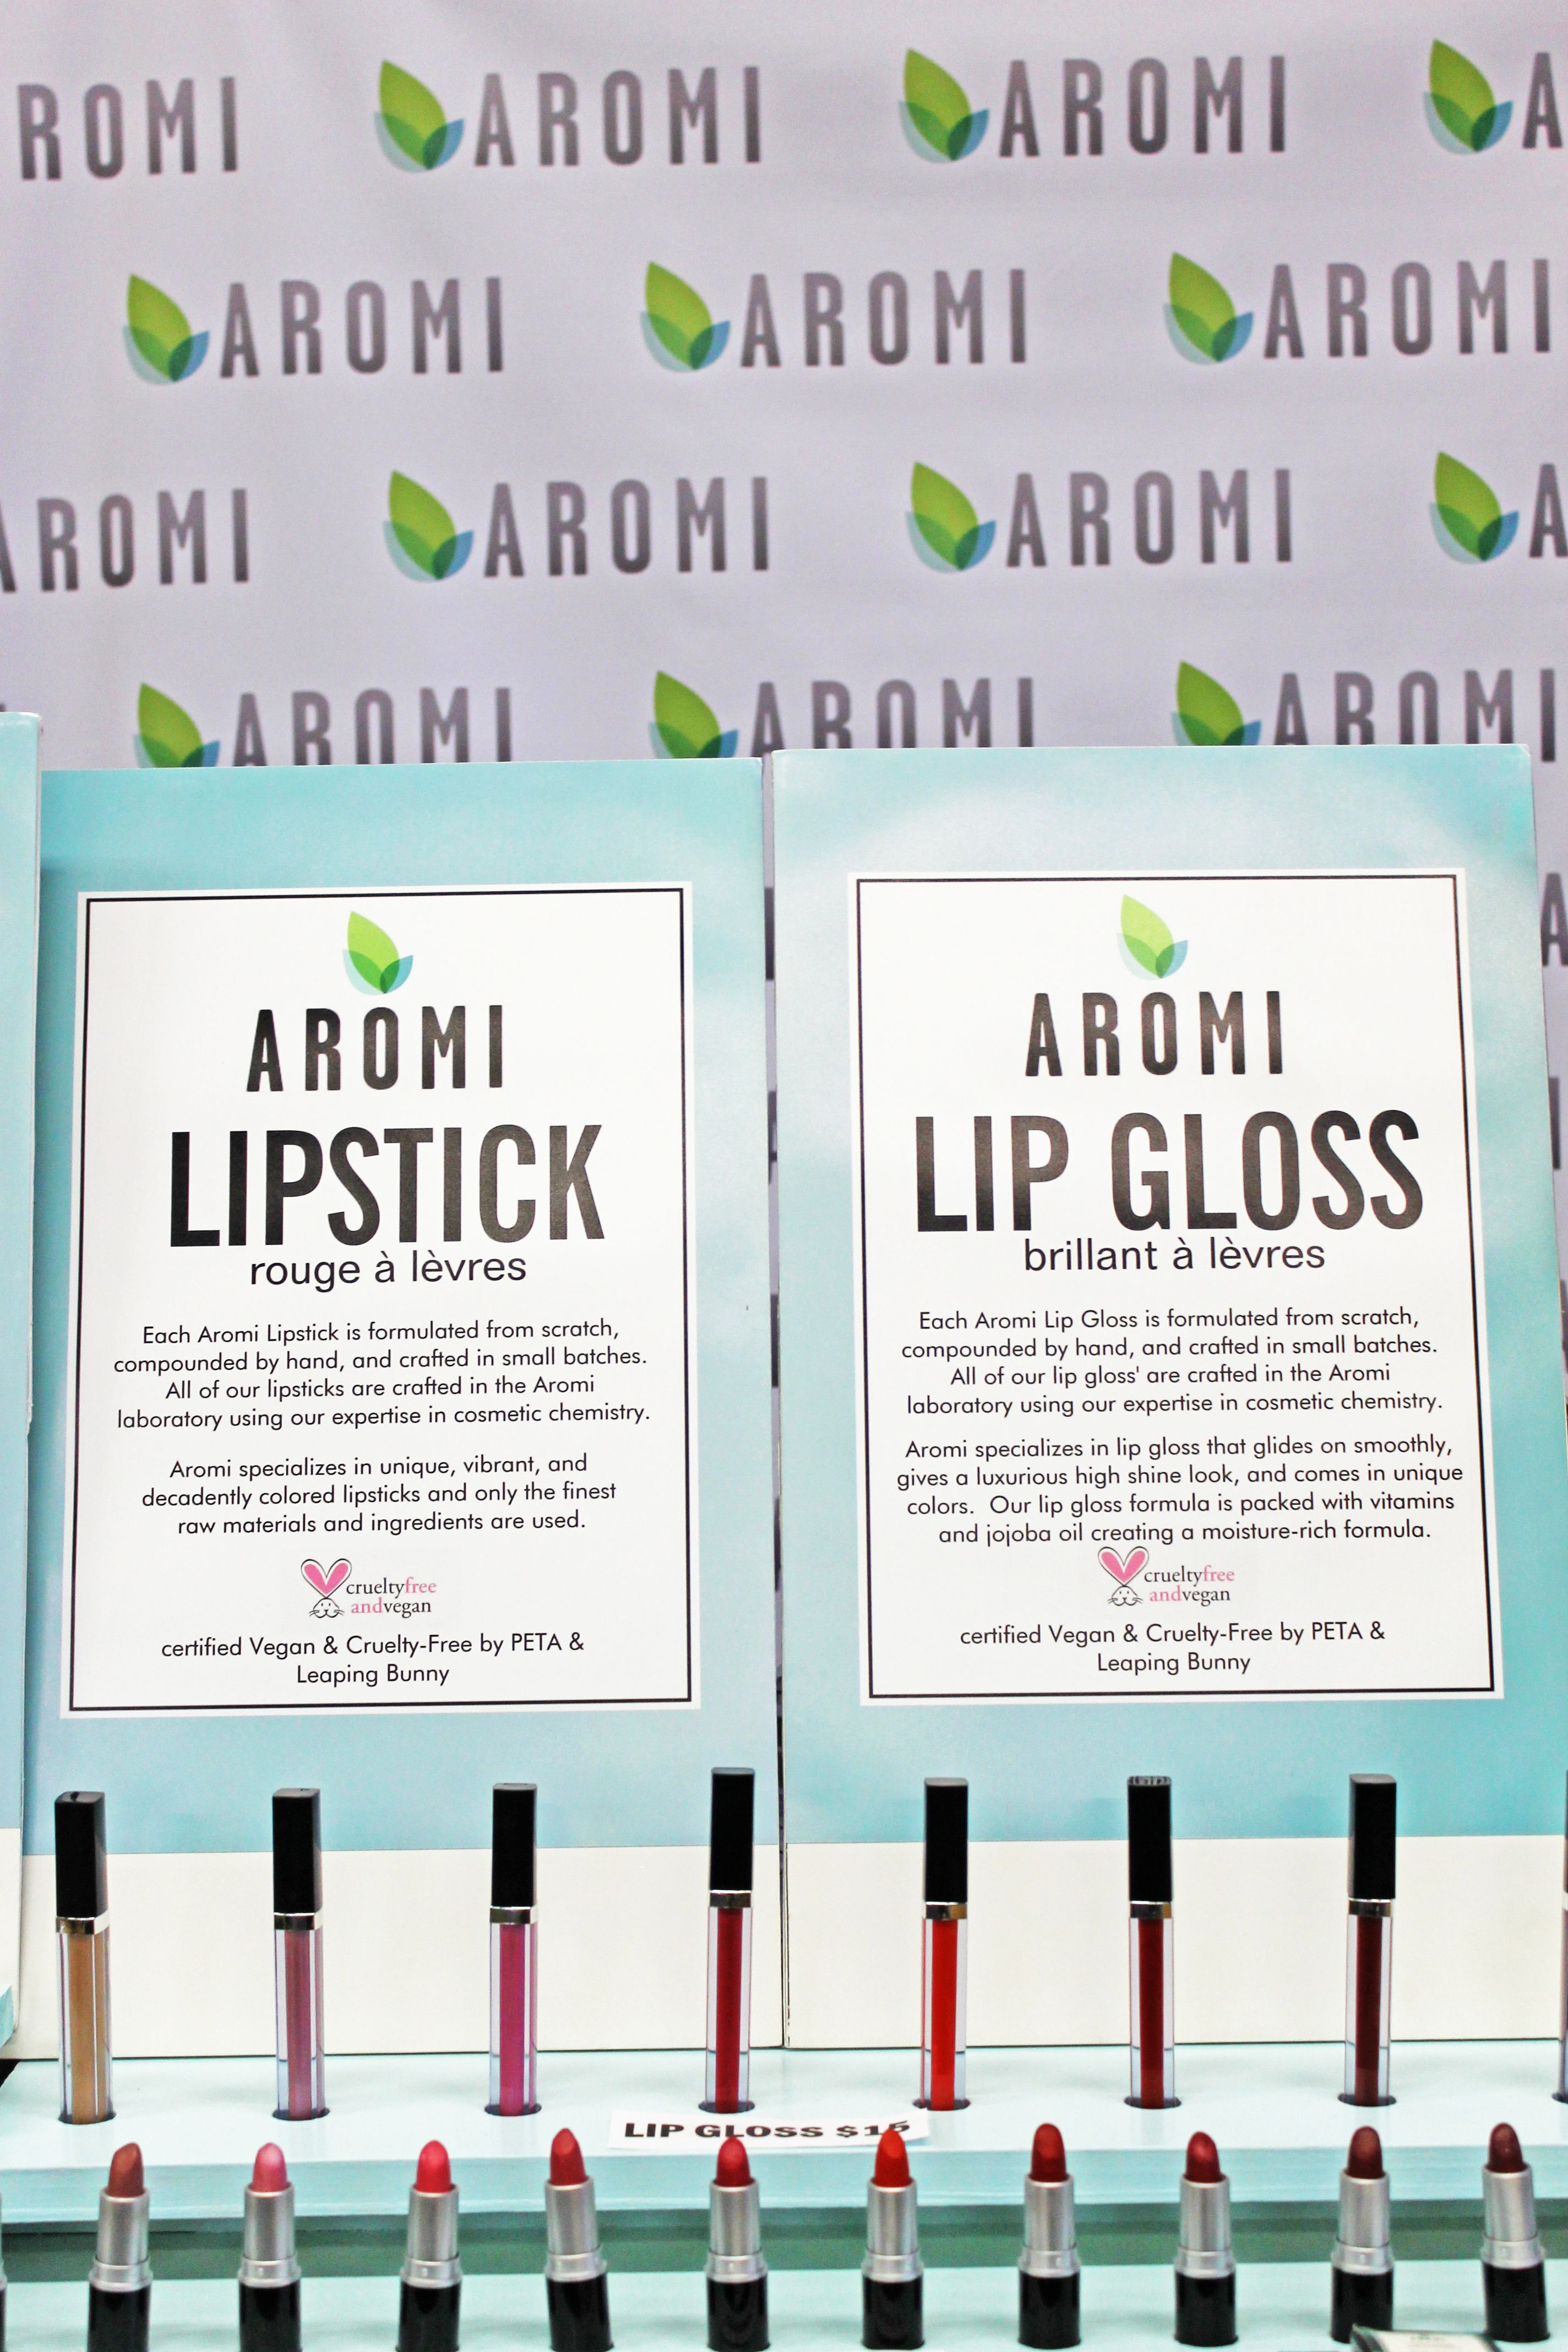 Aromi lip gloss and lipstick at the Chicago Renegade Fair.  Aromi cosmetics are handcrafted in small batches, vegan, cruelty-free, and come in a beautiful cosmetic box.  Certified by PETA and Leaping Bunny